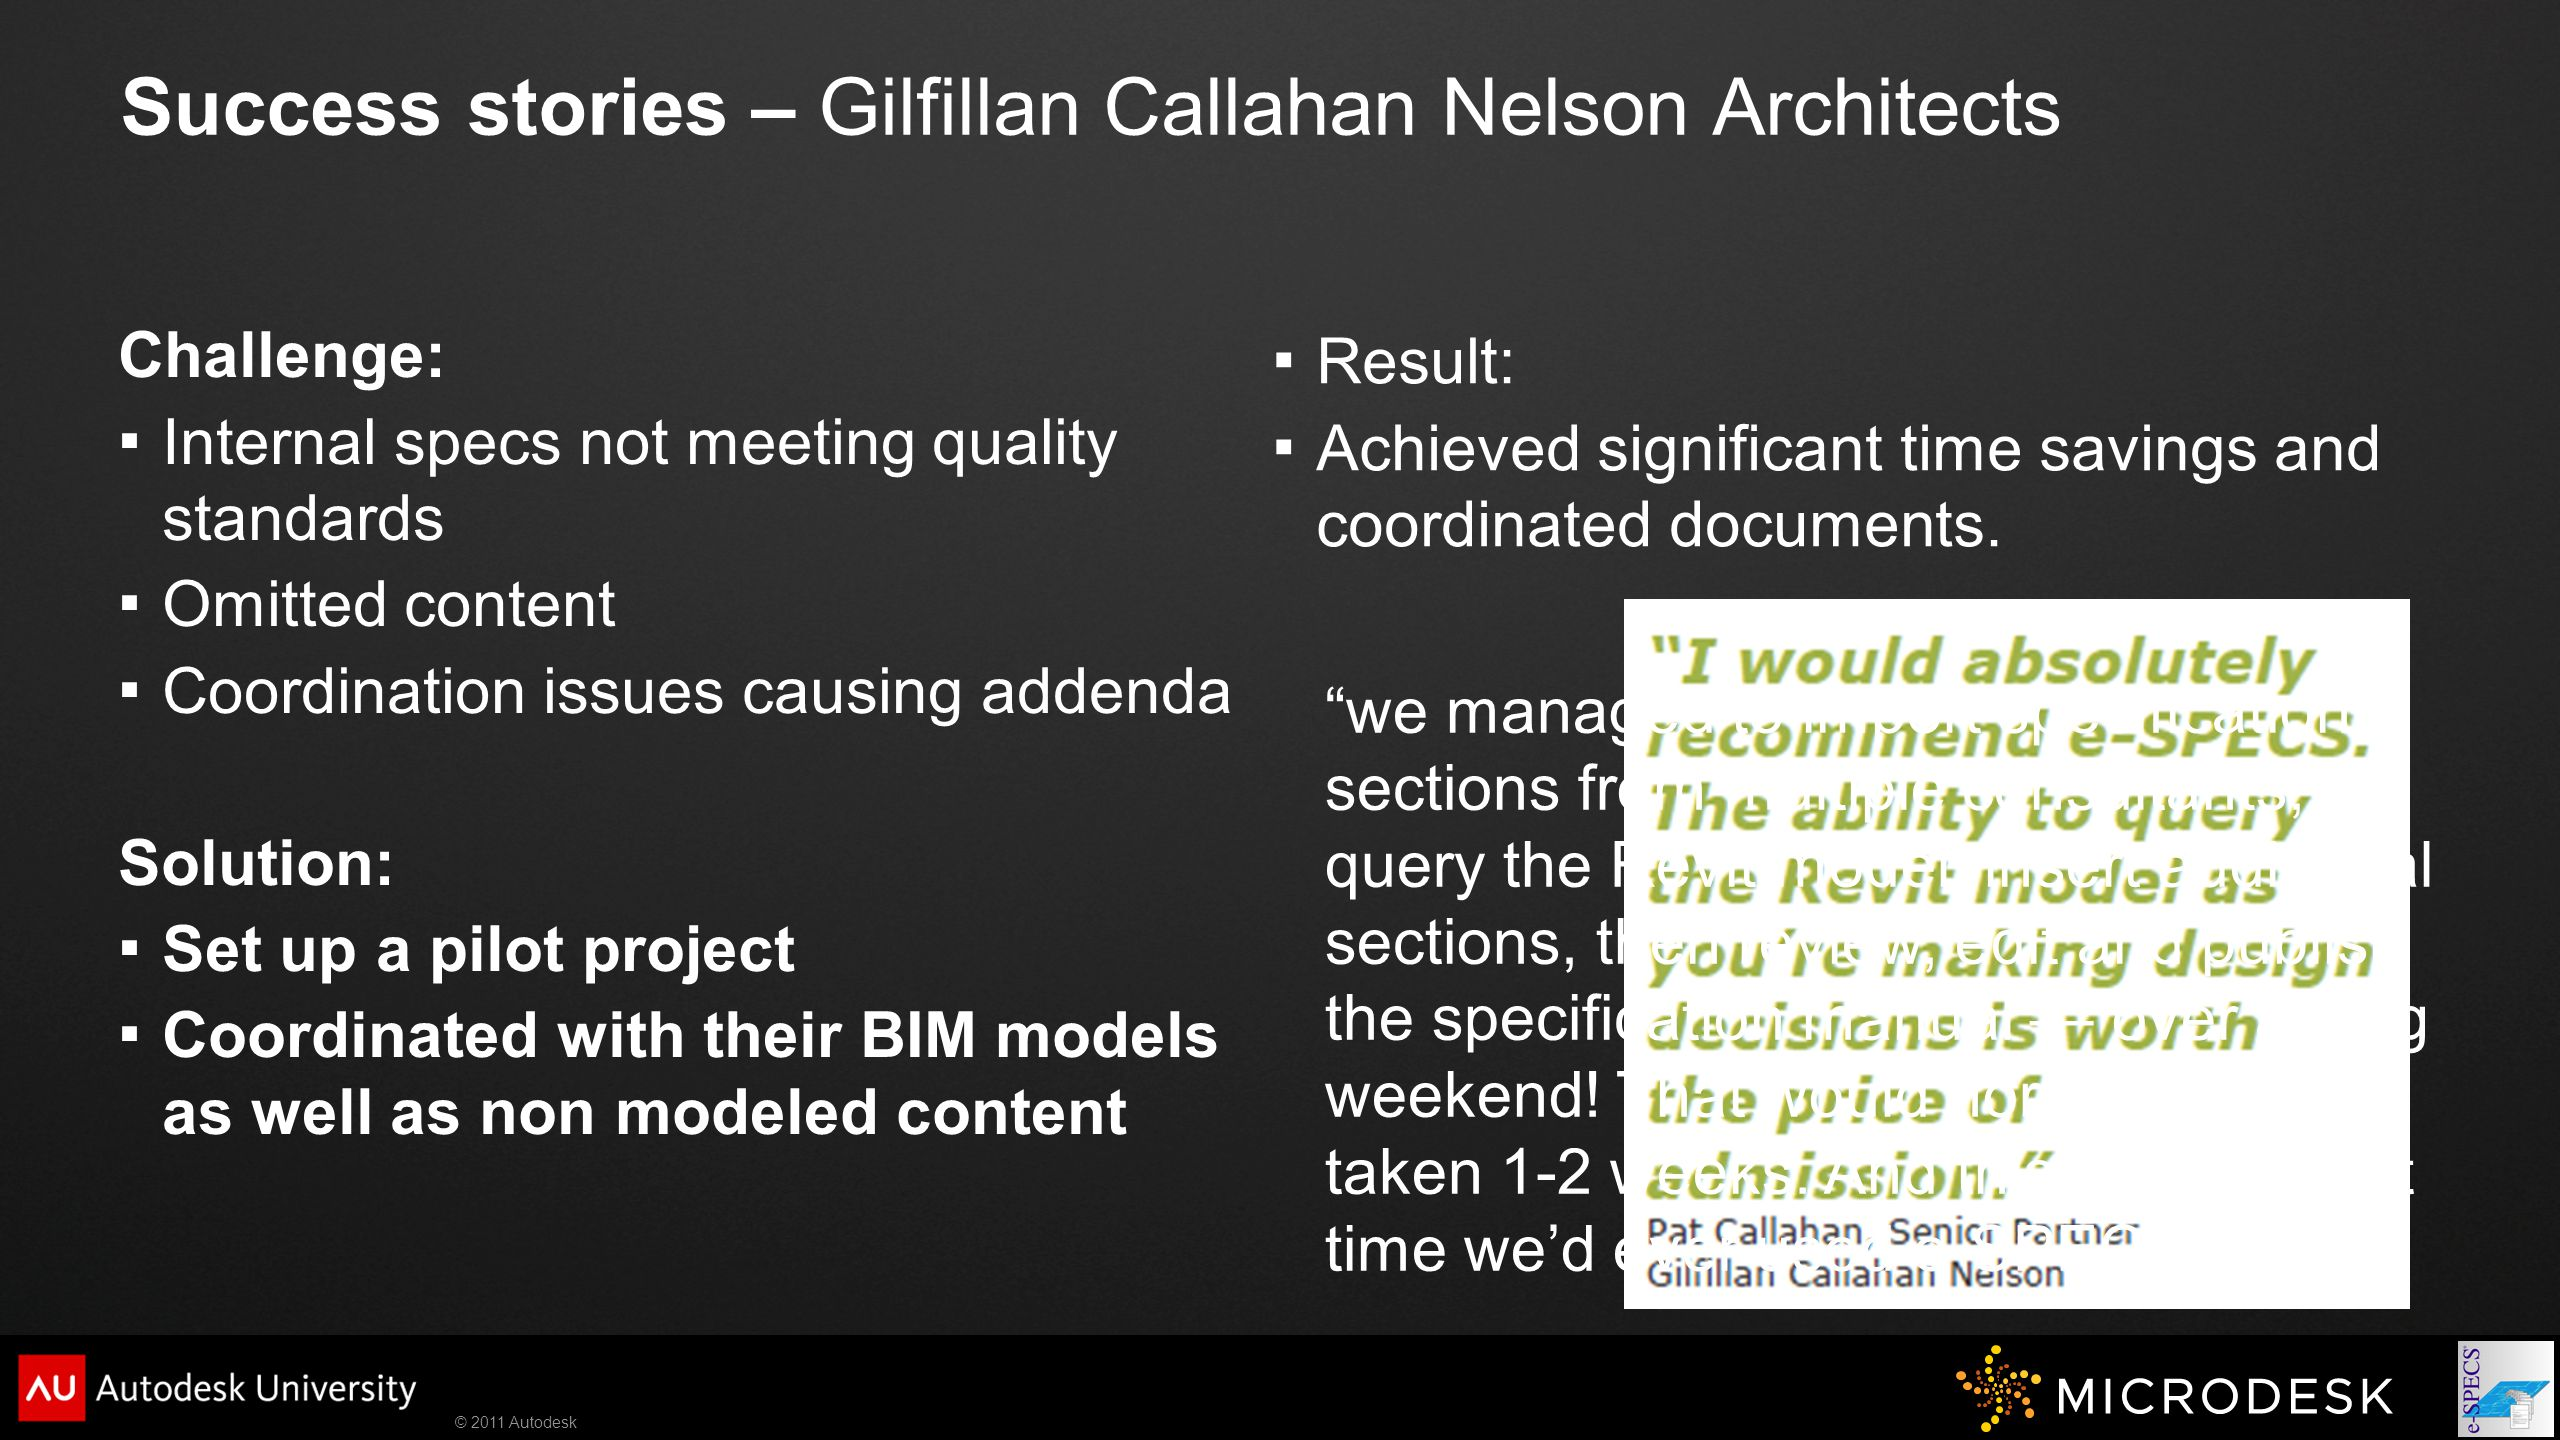 © 2011 Autodesk Success stories – Gilfillan Callahan Nelson Architects Challenge:  Internal specs not meeting quality standards  Omitted content  Coordination issues causing addenda Solution:  Set up a pilot project  Coordinated with their BIM models as well as non modeled content  Result:  Achieved significant time savings and coordinated documents.